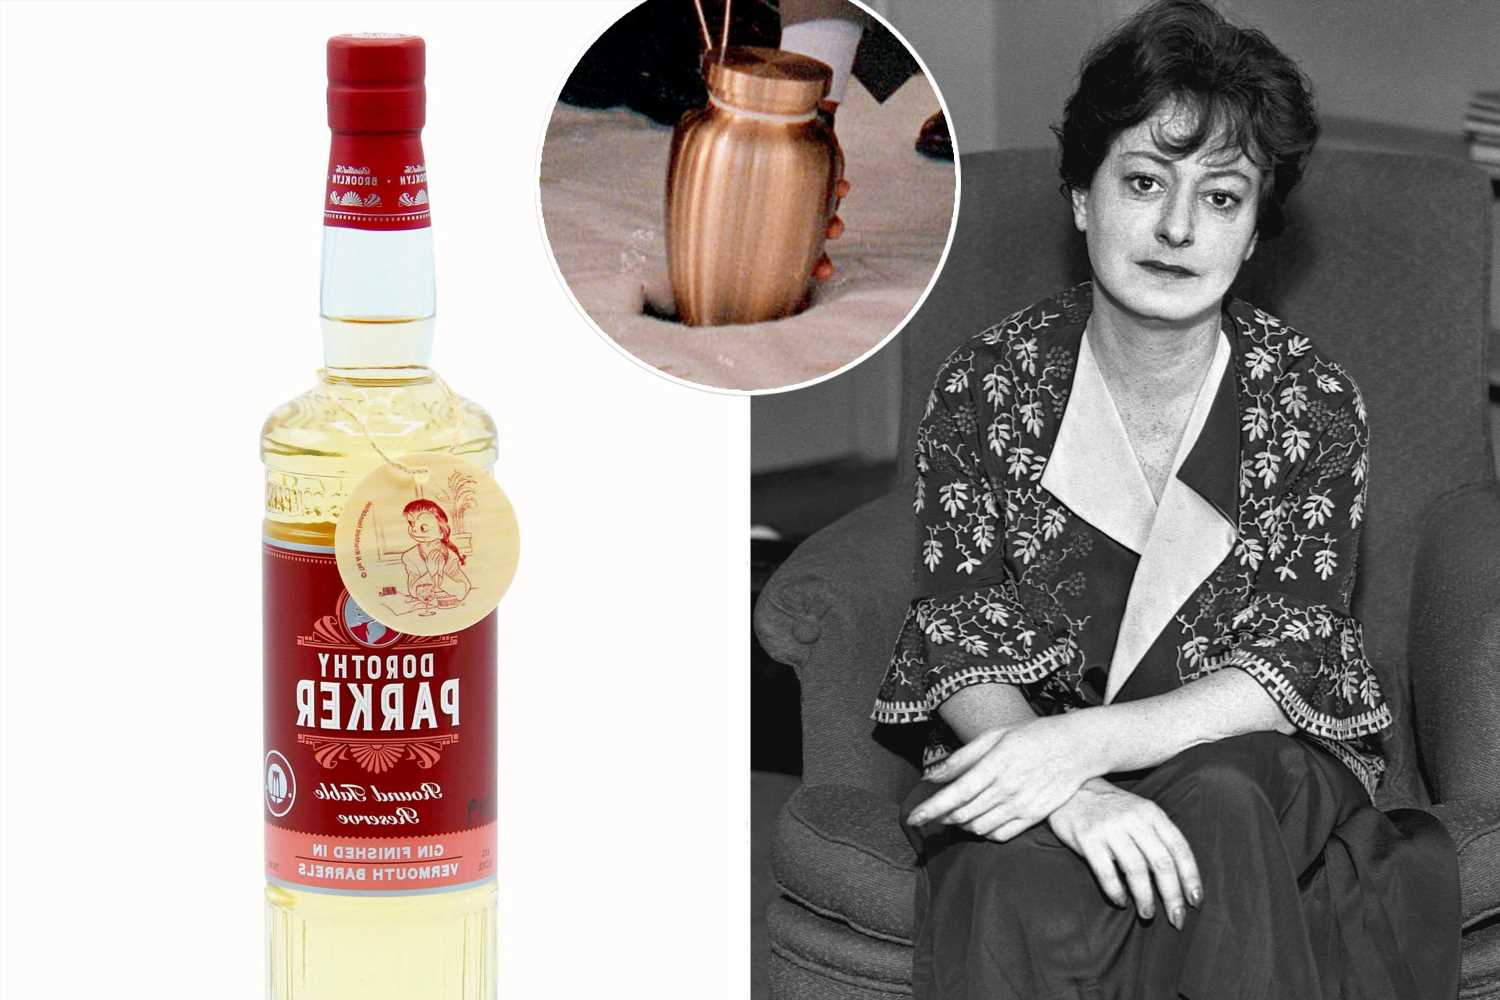 Special batch Dorothy Parker gin proceeds help pay for her headstone